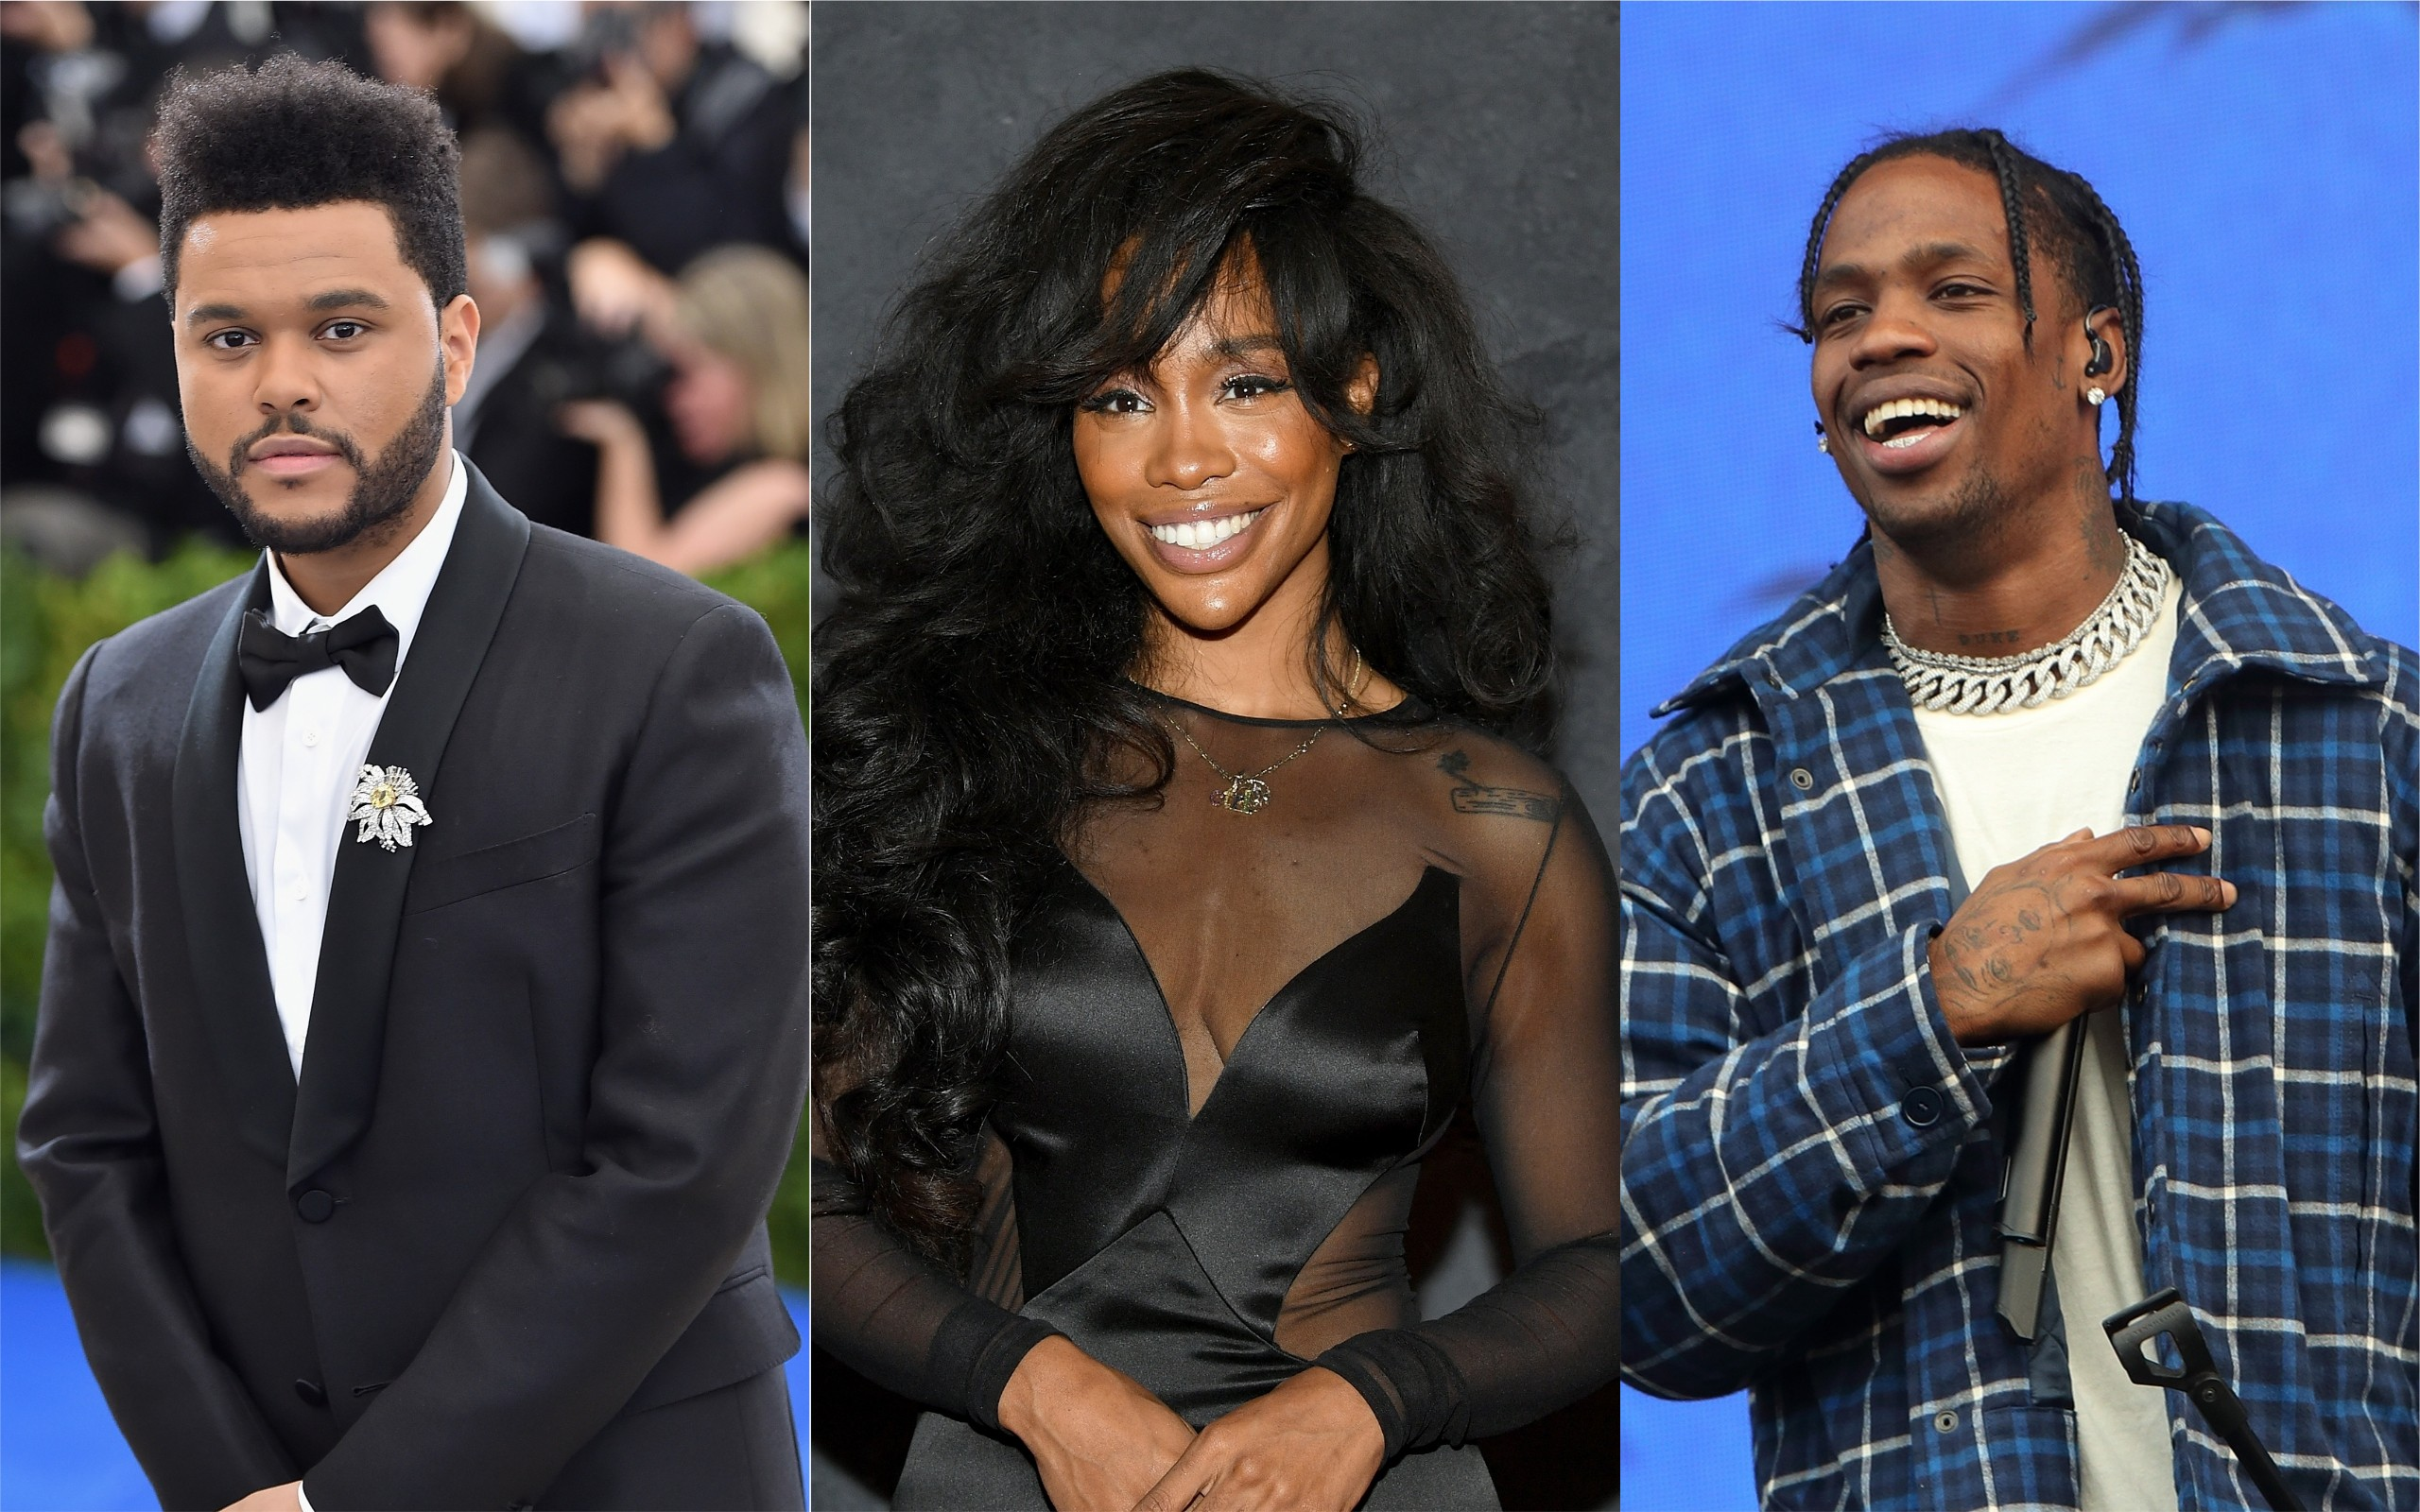 the-weeknd-sza-travis-scott-have-a-new-song-in-game-of-thrones